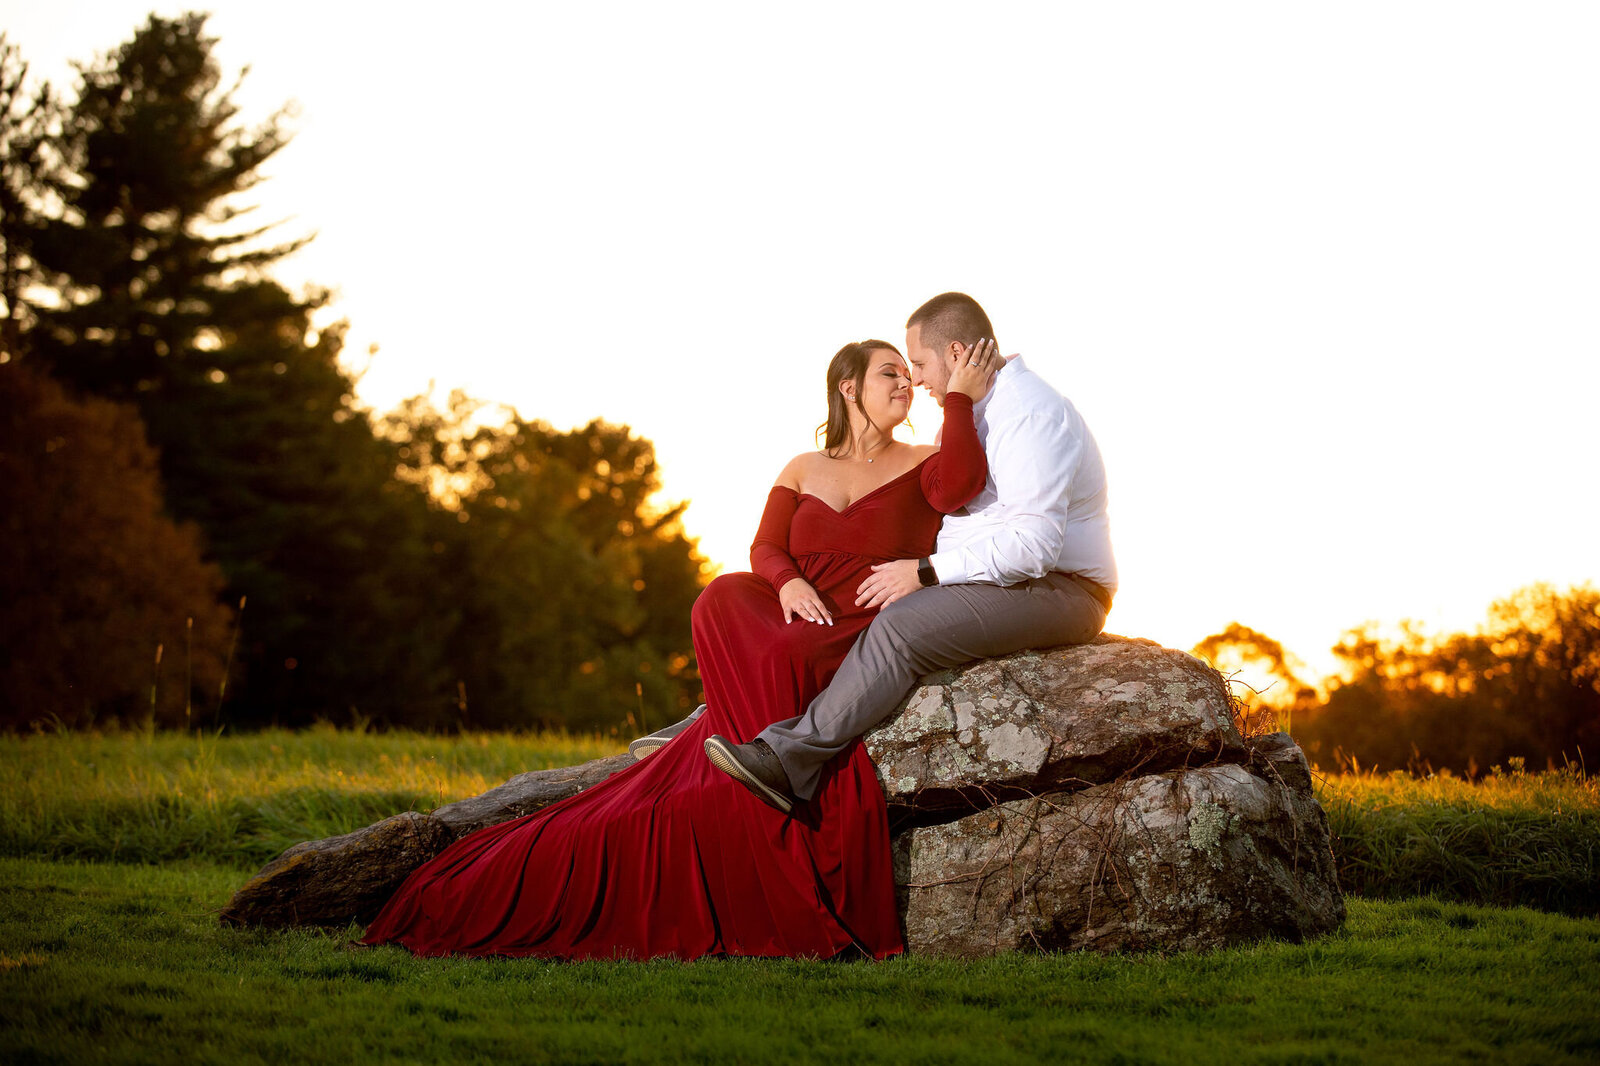 HaleyJesse-Engagement-TopsmeadStateForest-106